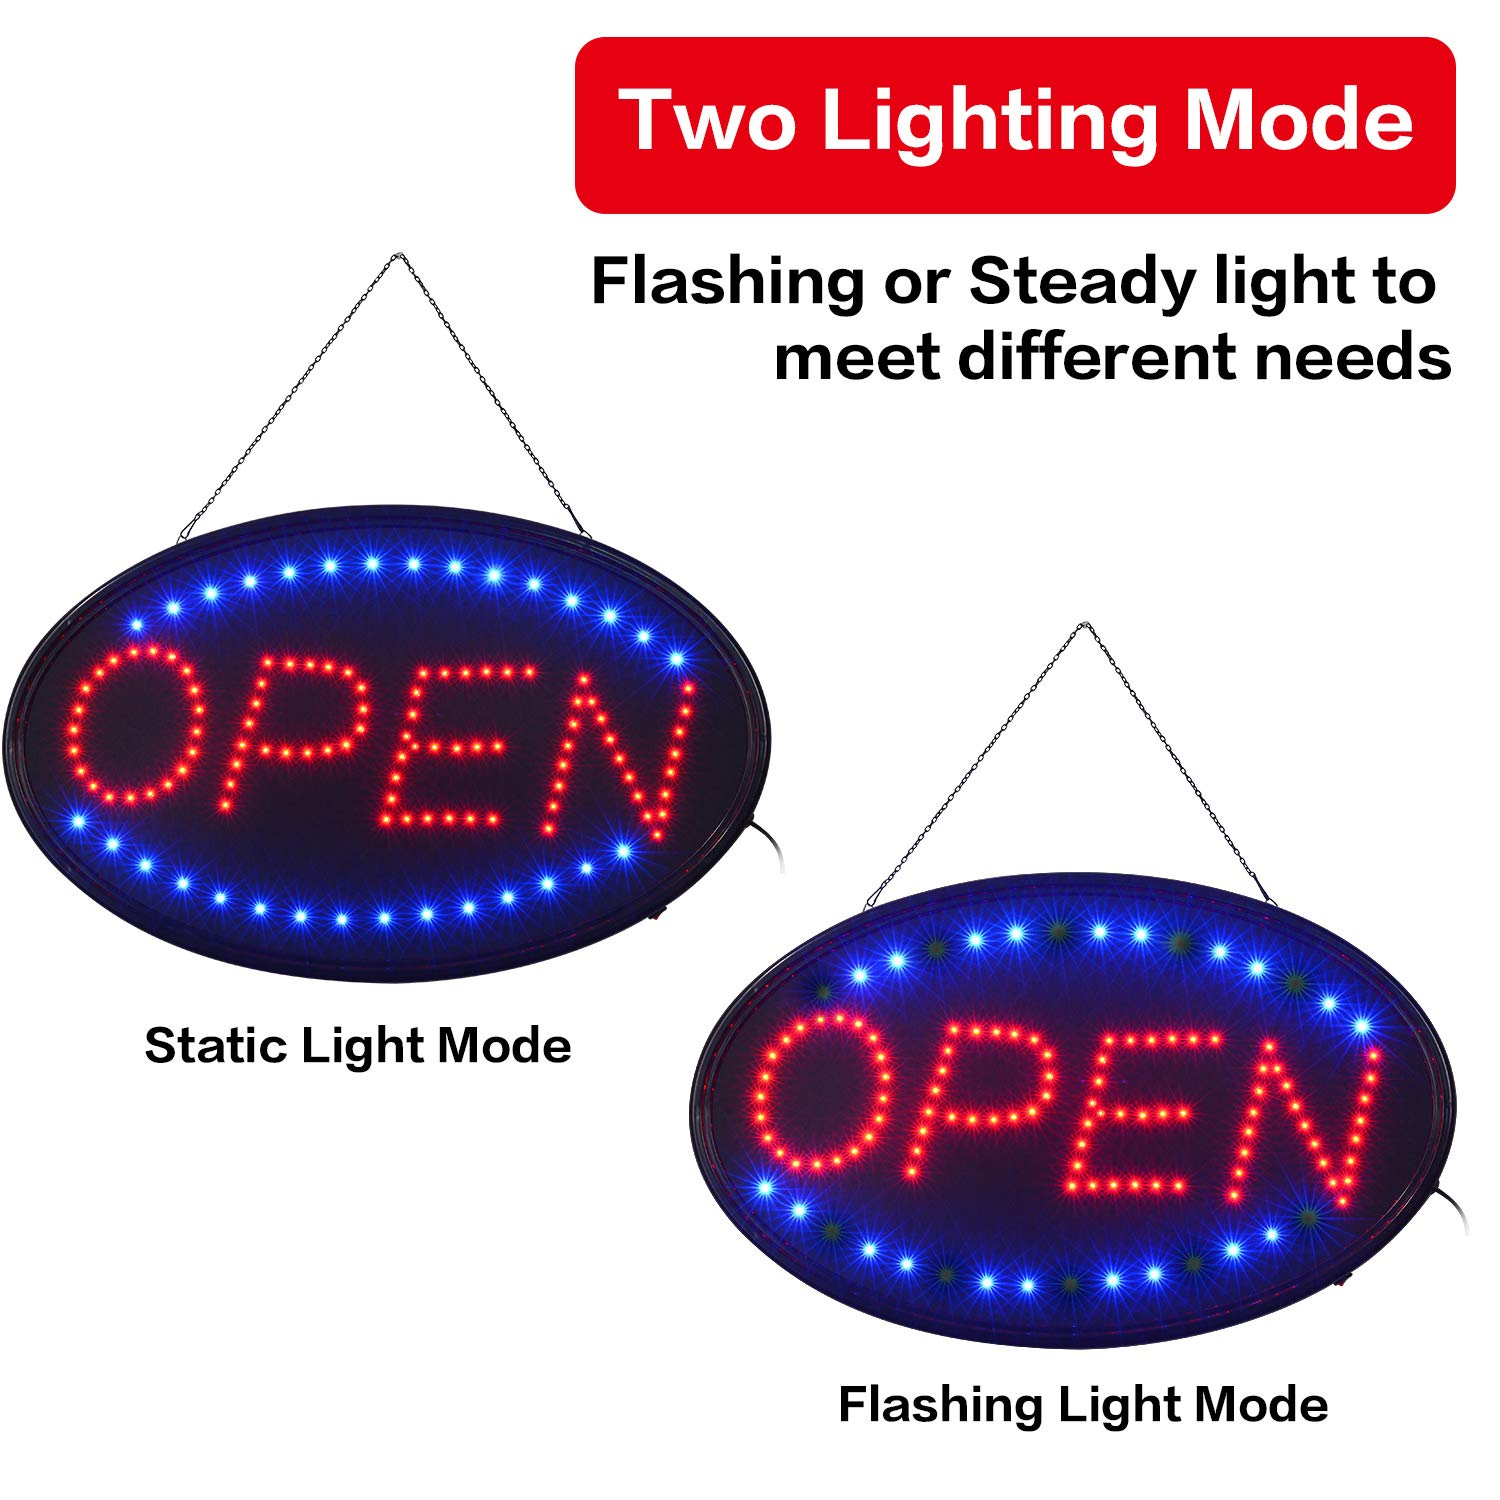 LED Open Sign,23x14inch Larger LED Business Sign,Advertisement Display Board Flashing & Steady Light Open Sign for Business, Walls, Window, Shop, Bar, Hotel by Datedirect (Image #4)